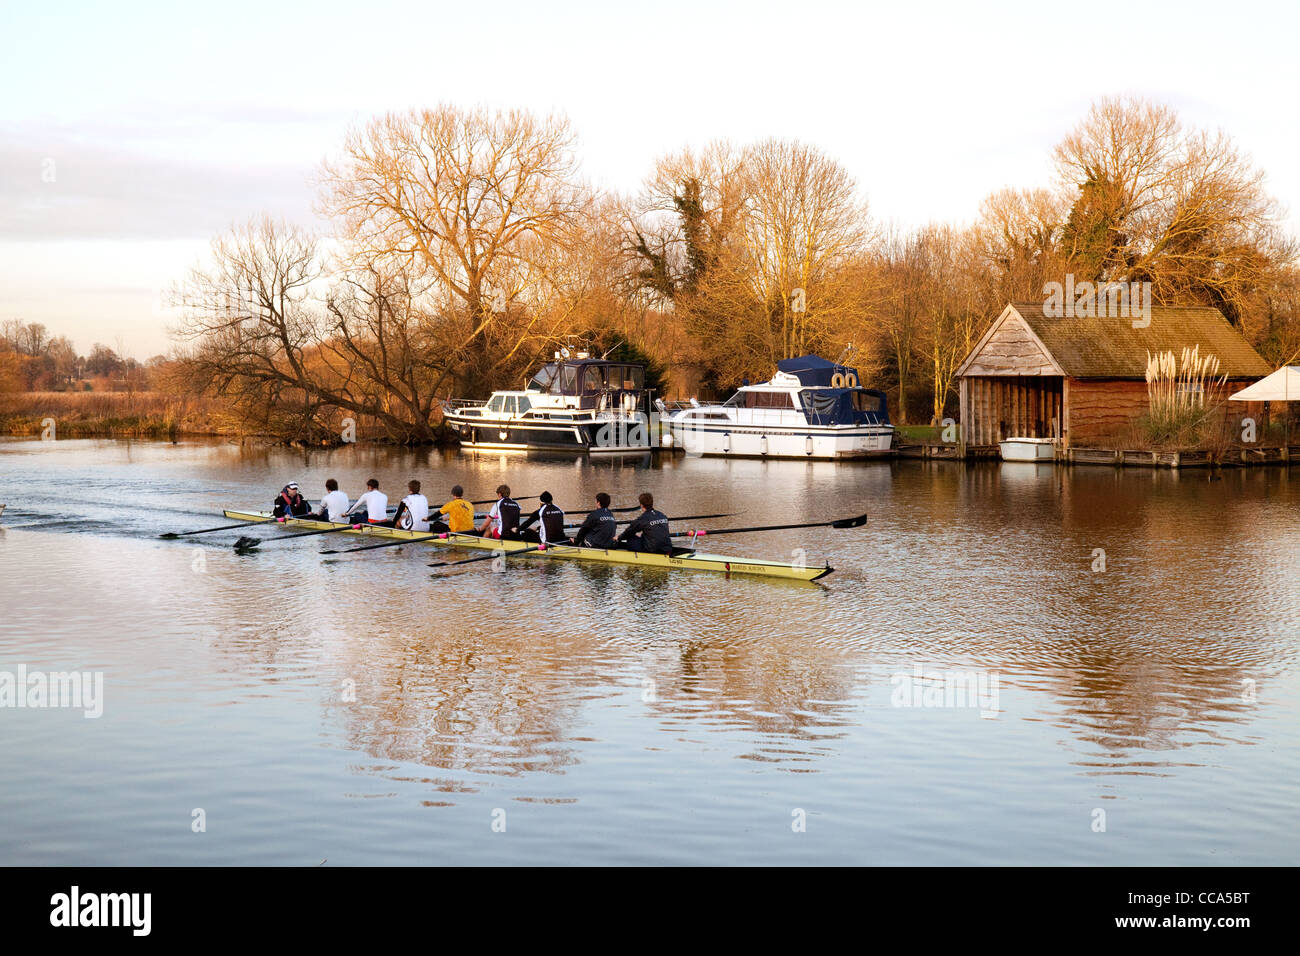 An eight boat rowing on the River Thames at Moulsford, Oxfordshire, UK - Stock Image